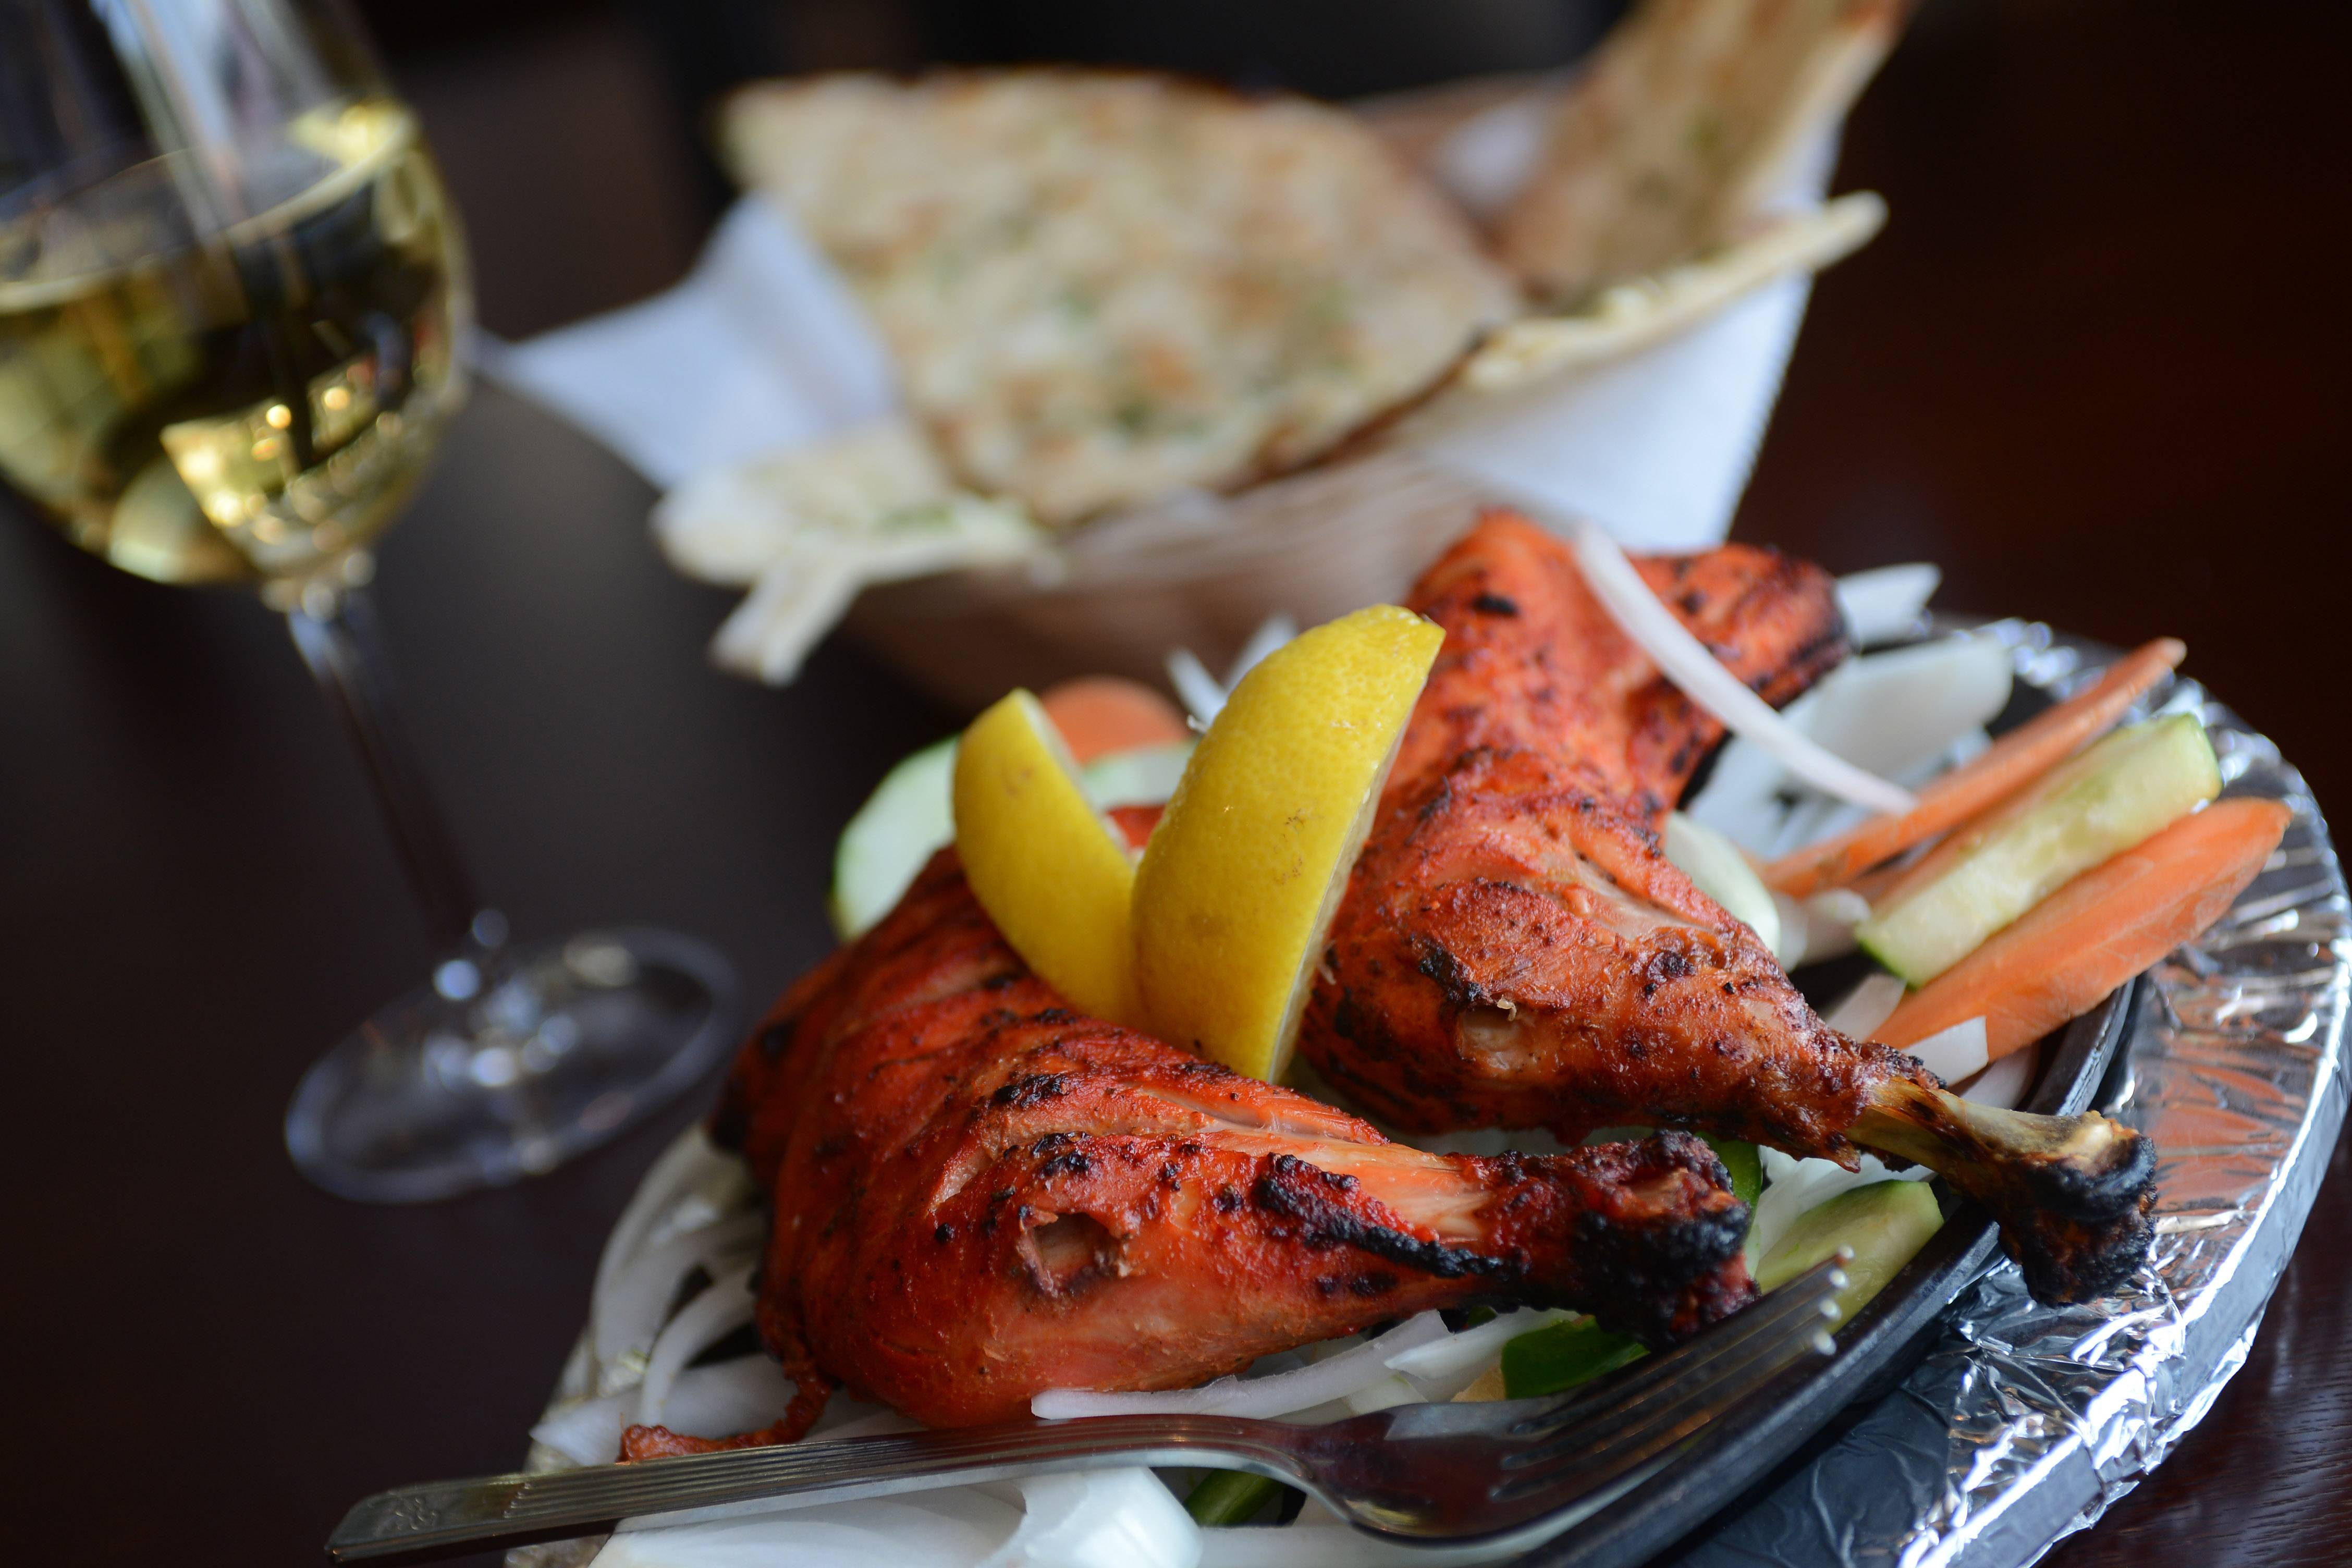 Tandoori chicken is cooked in a traditional tandoor, or clay oven, at Spice Grill in Rolling Meadows.